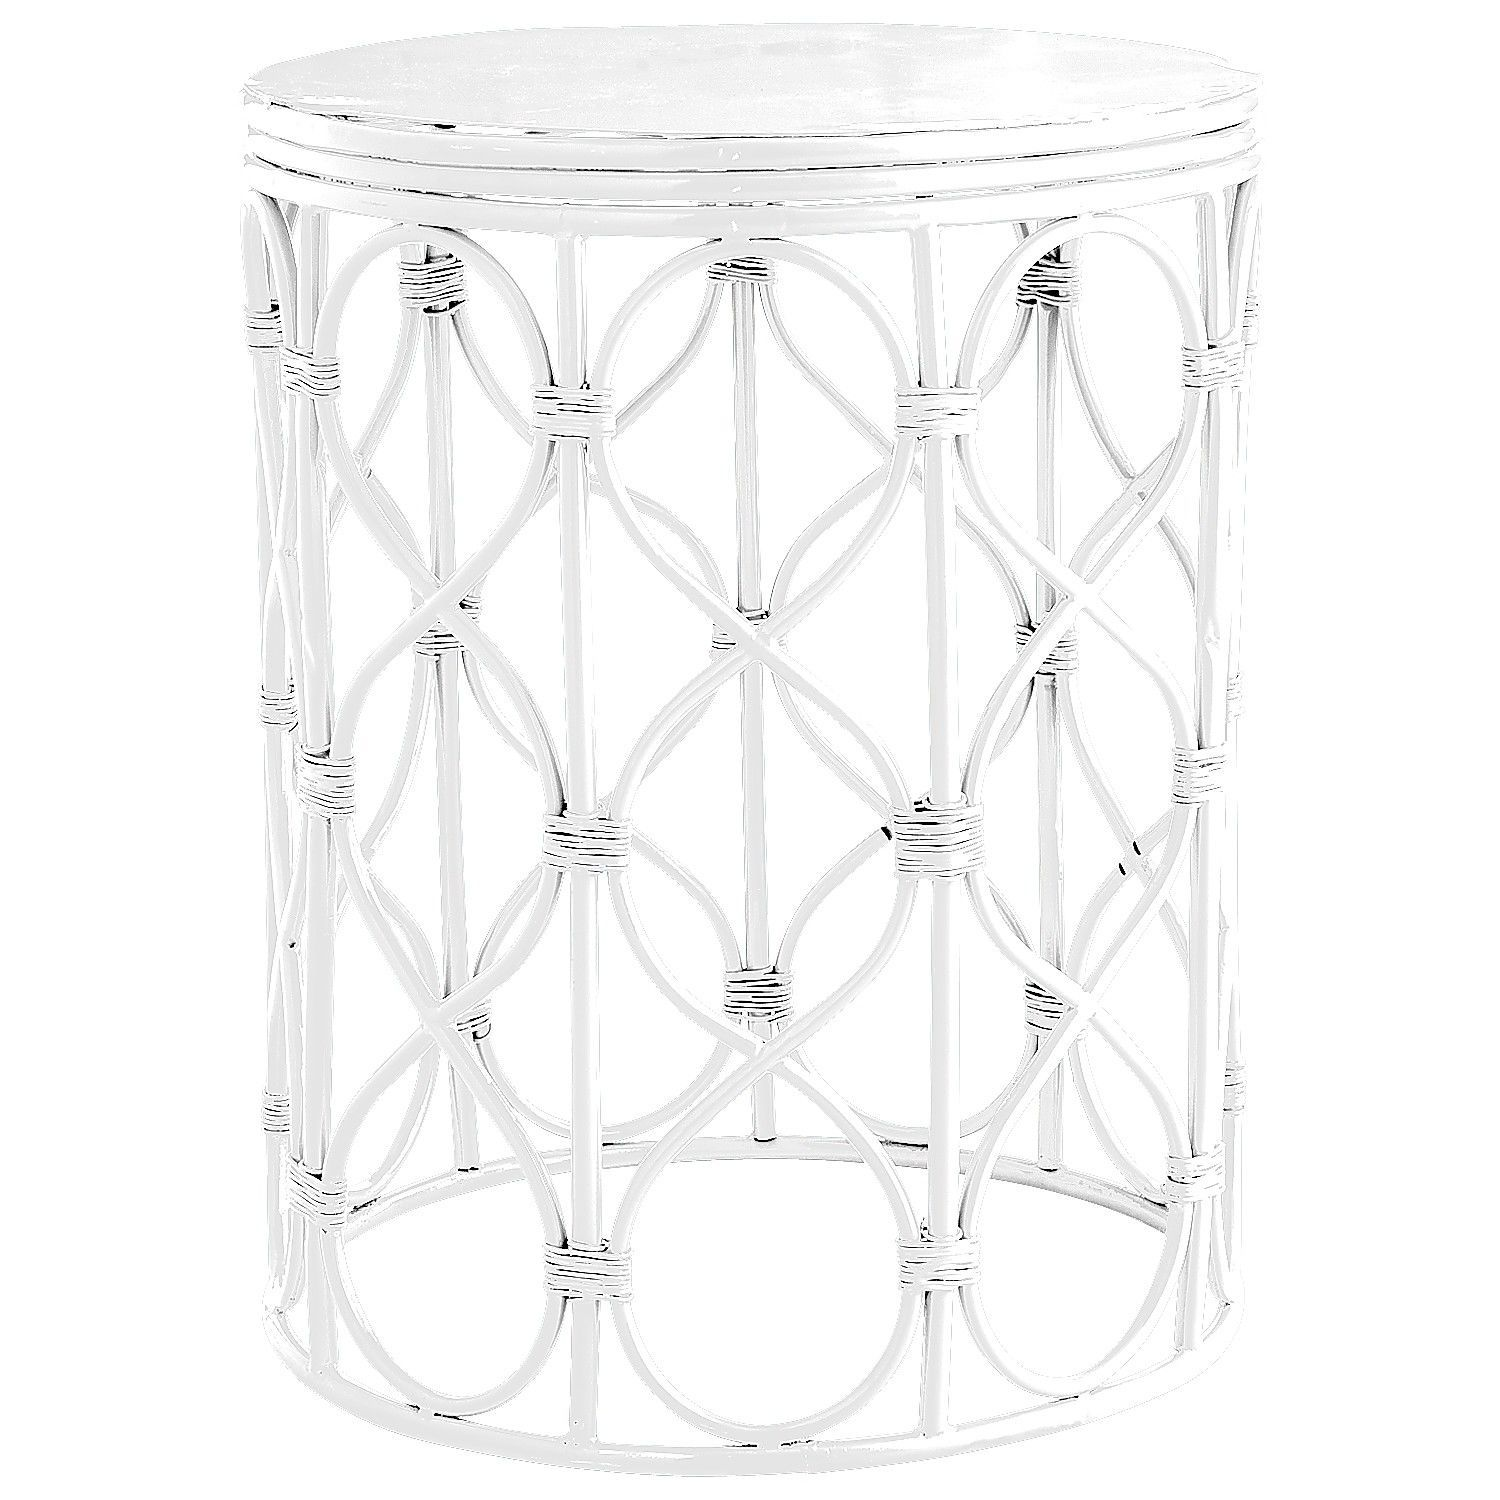 swirl drum accent table white pier imports gorgeous gardens homeware decor concrete small triangle nautical dining room lights chairs set bistro umbrella corner bench wall